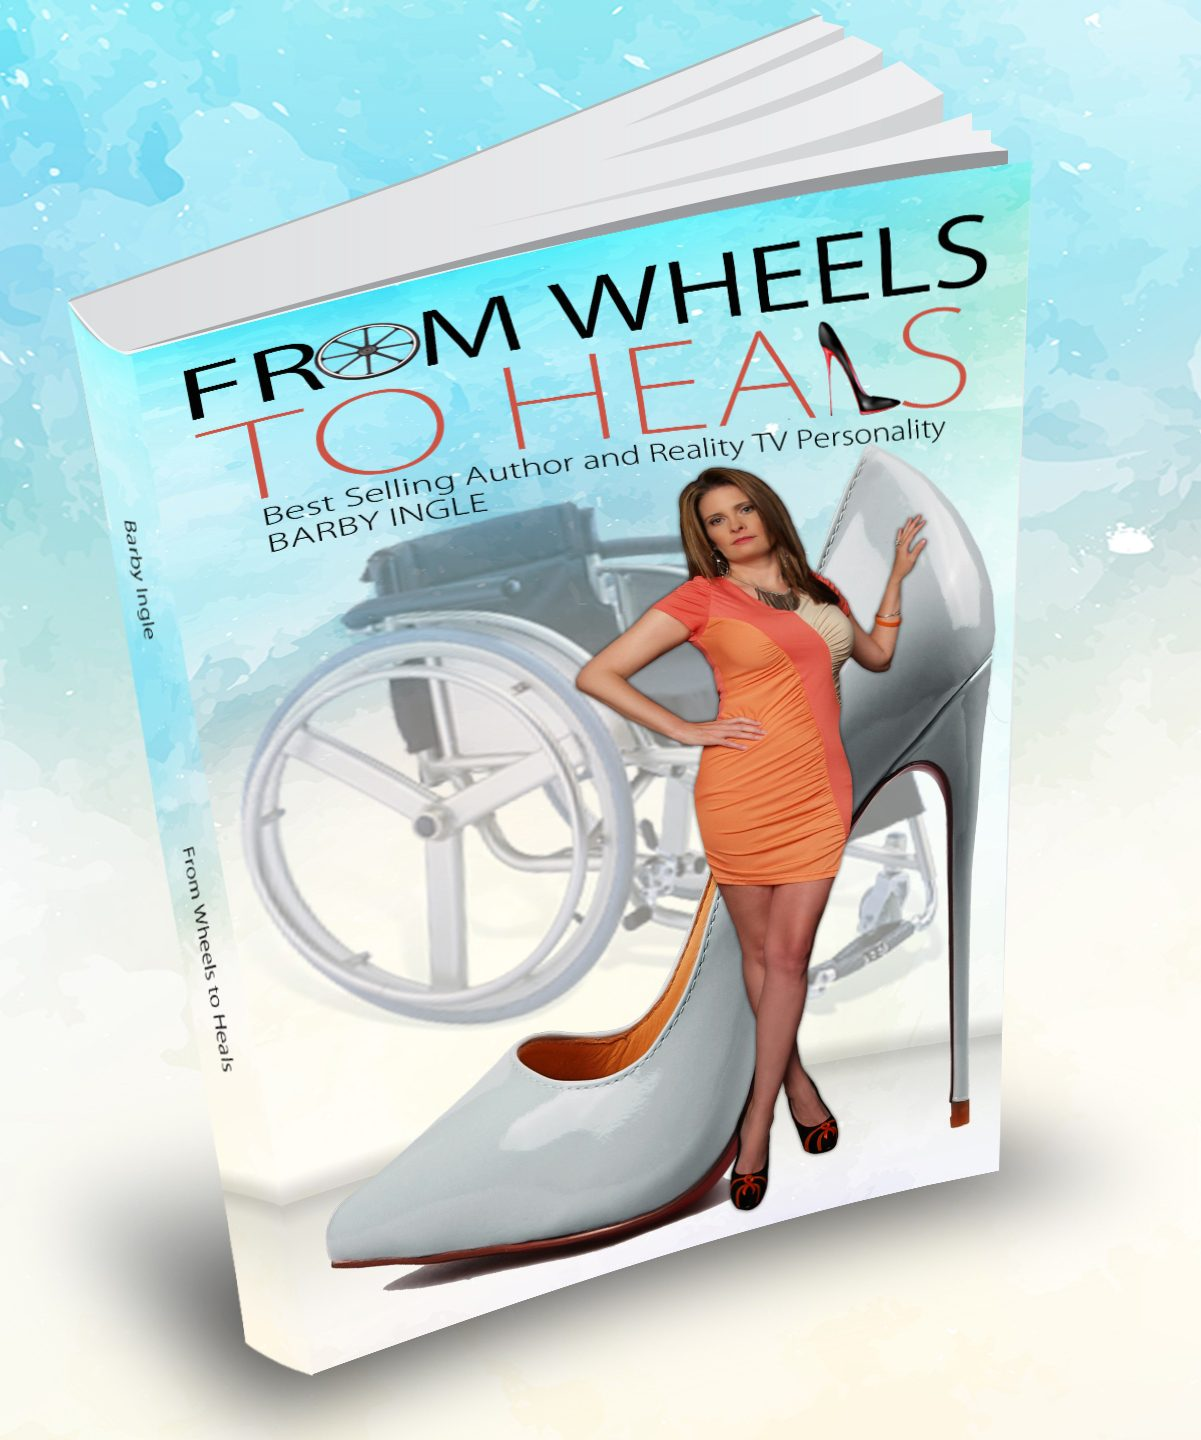 FROM WHEELS TO HEALS book